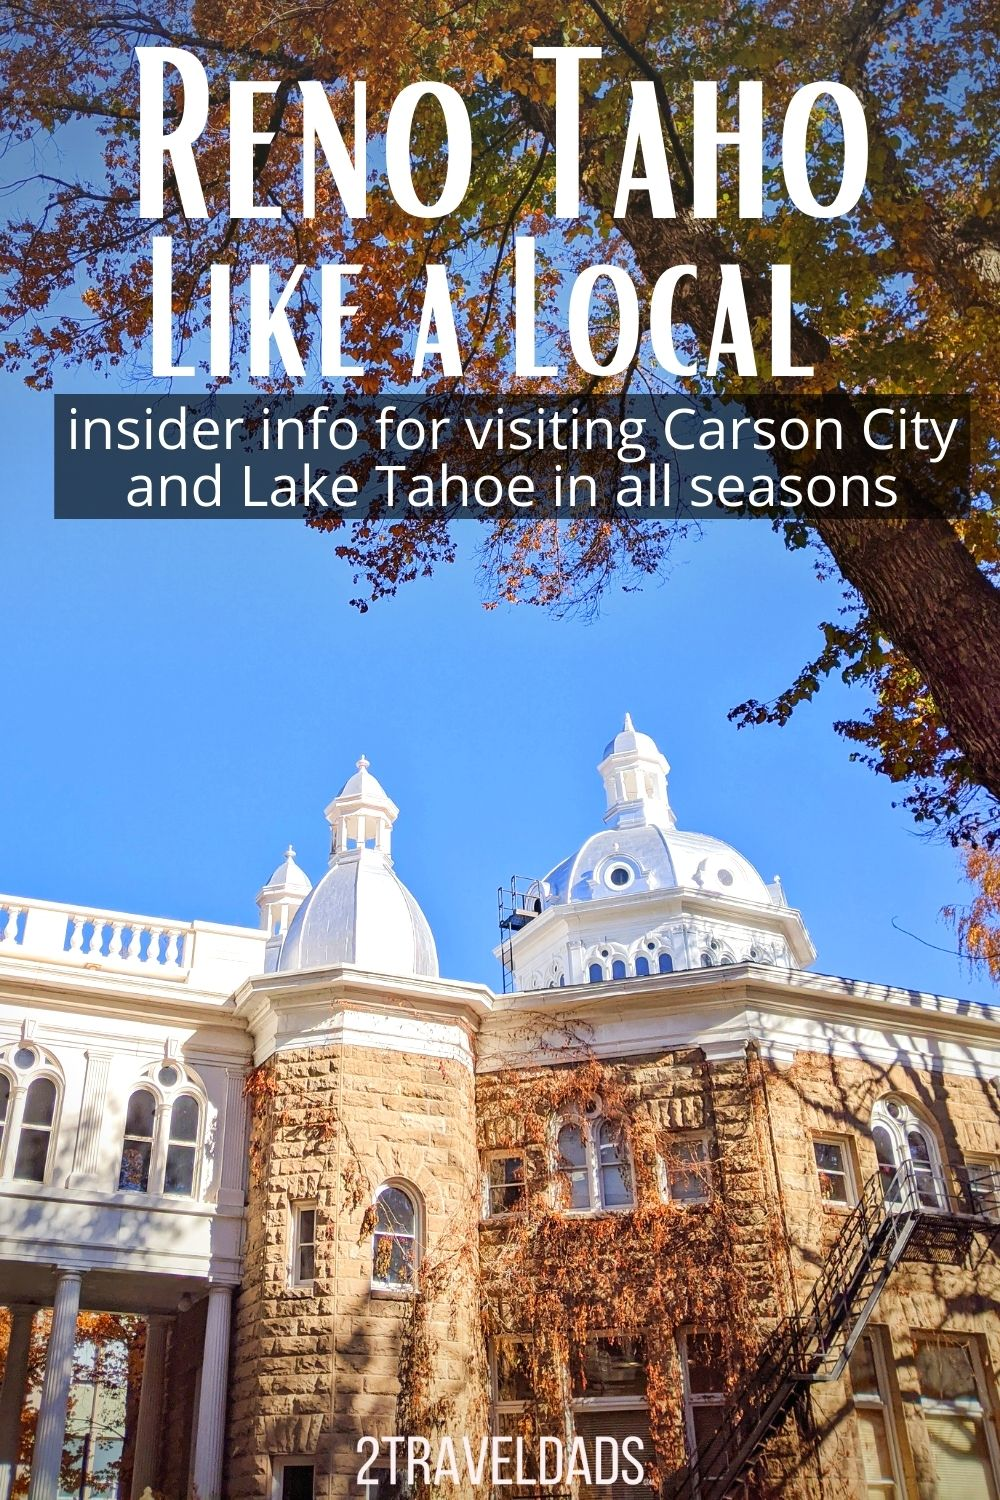 Visiting Lake Tahoe and Carson City is great any time of year when you have a local's insider information. Tips of when to visit and where to find great travel deals to the Reno Tahoe area.